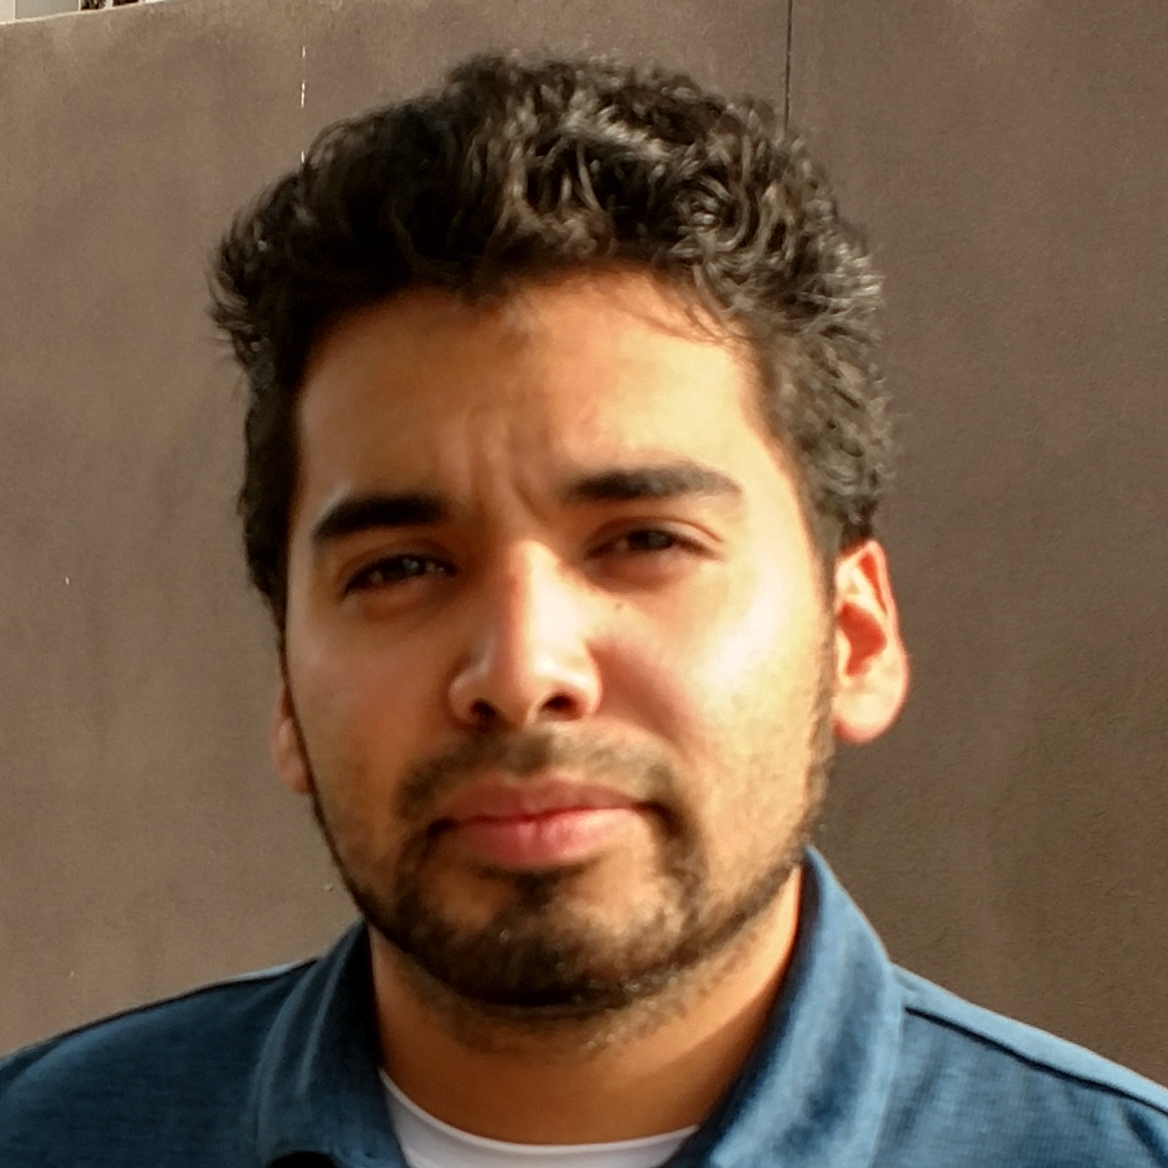 David Hernandez is the Arizona NICE RAMPS Grant Project Coordinator where organizes K-12 cybersecurity workshops and brings unity between the cybersecurity community. He also stands in the leadership team for the Arizona Cyber Warfare Range where he conducts real world hands-on cybersecrutiy workshops for people of all ages.